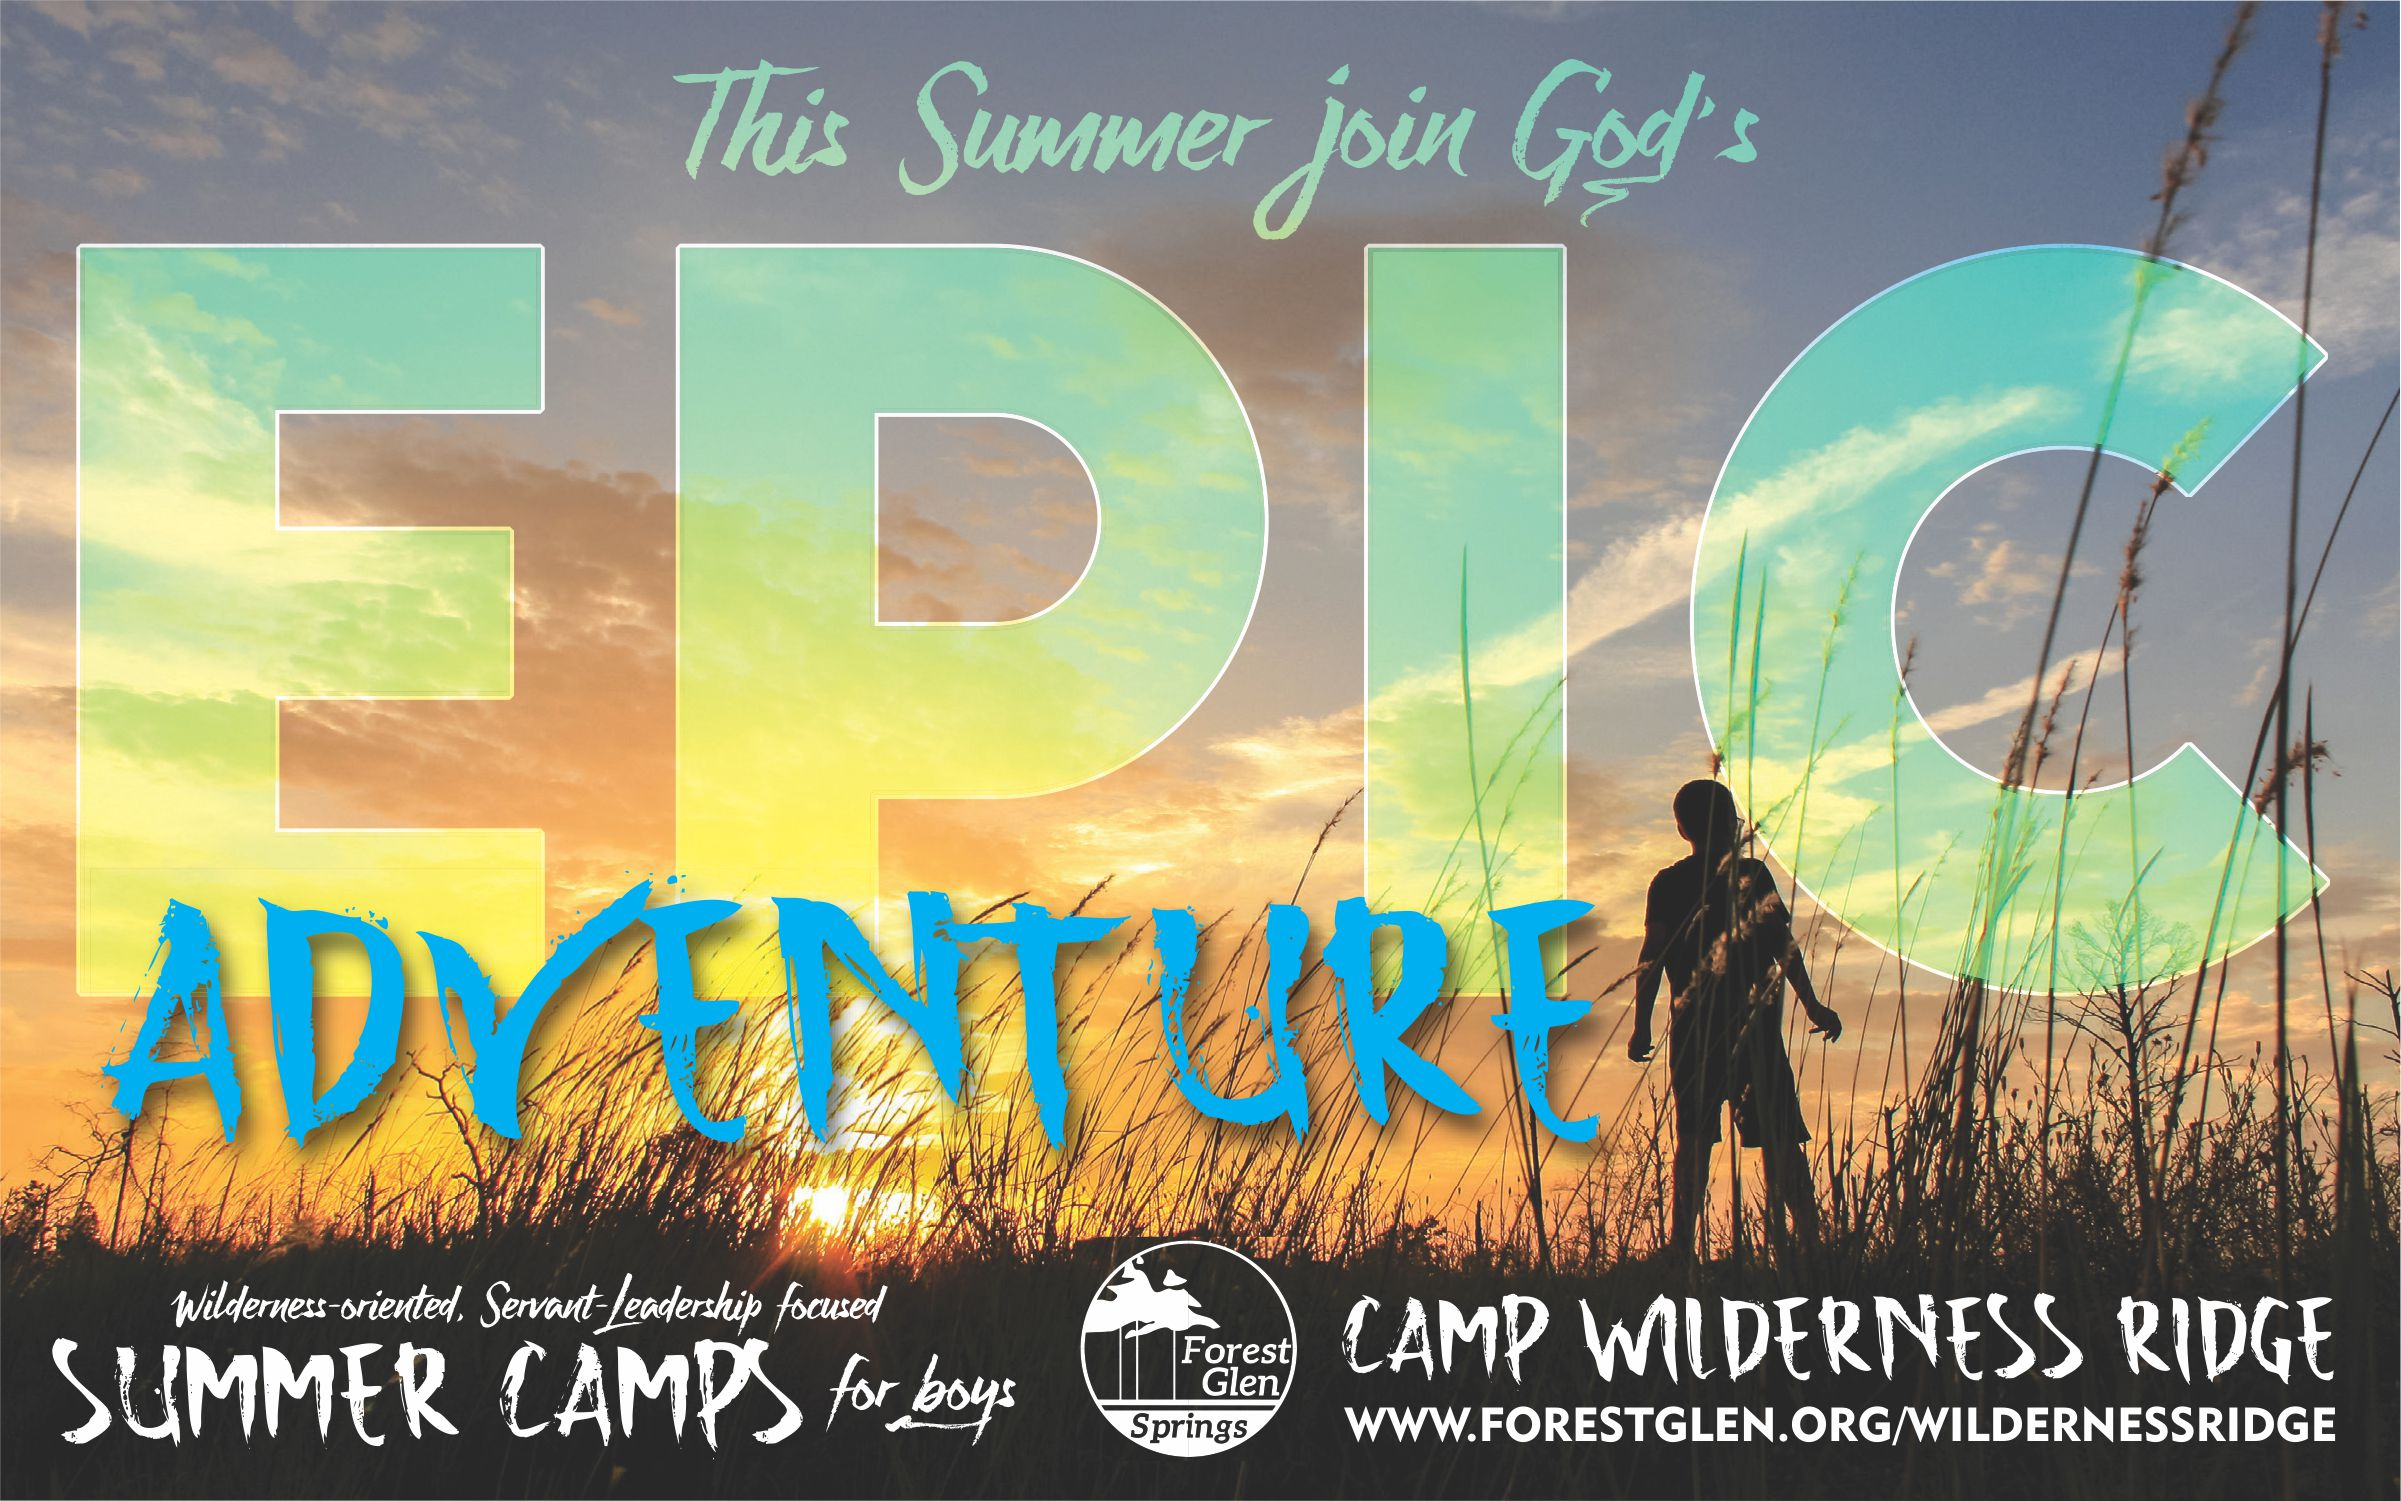 wilderness ridge summer camps 5x8 card JPG - 1.jpg